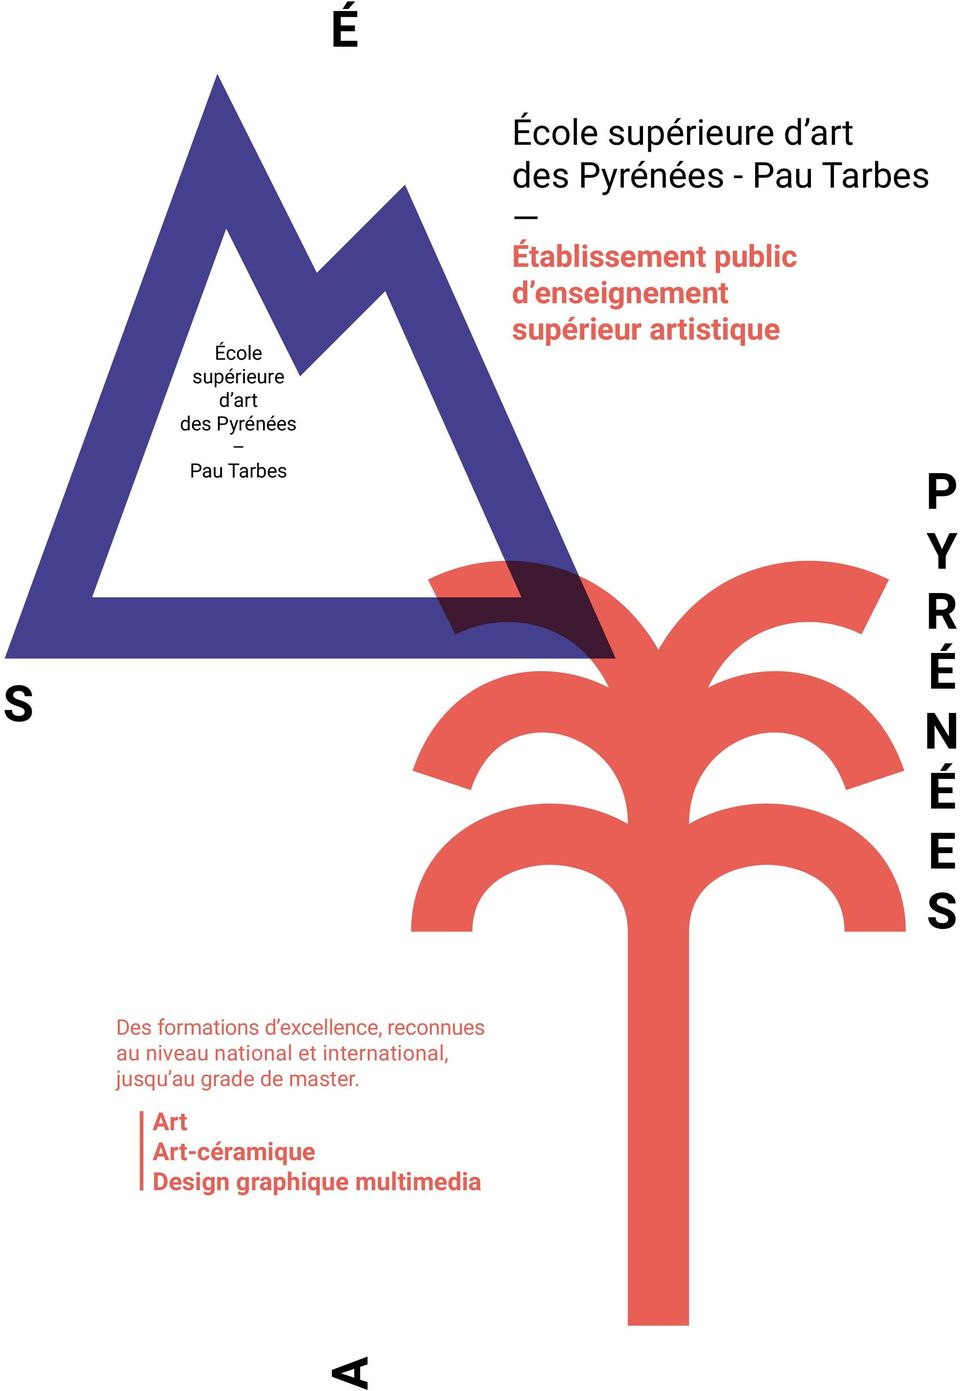 P Y R É N É E S Des formations d excellence, reconnues au niveau national et